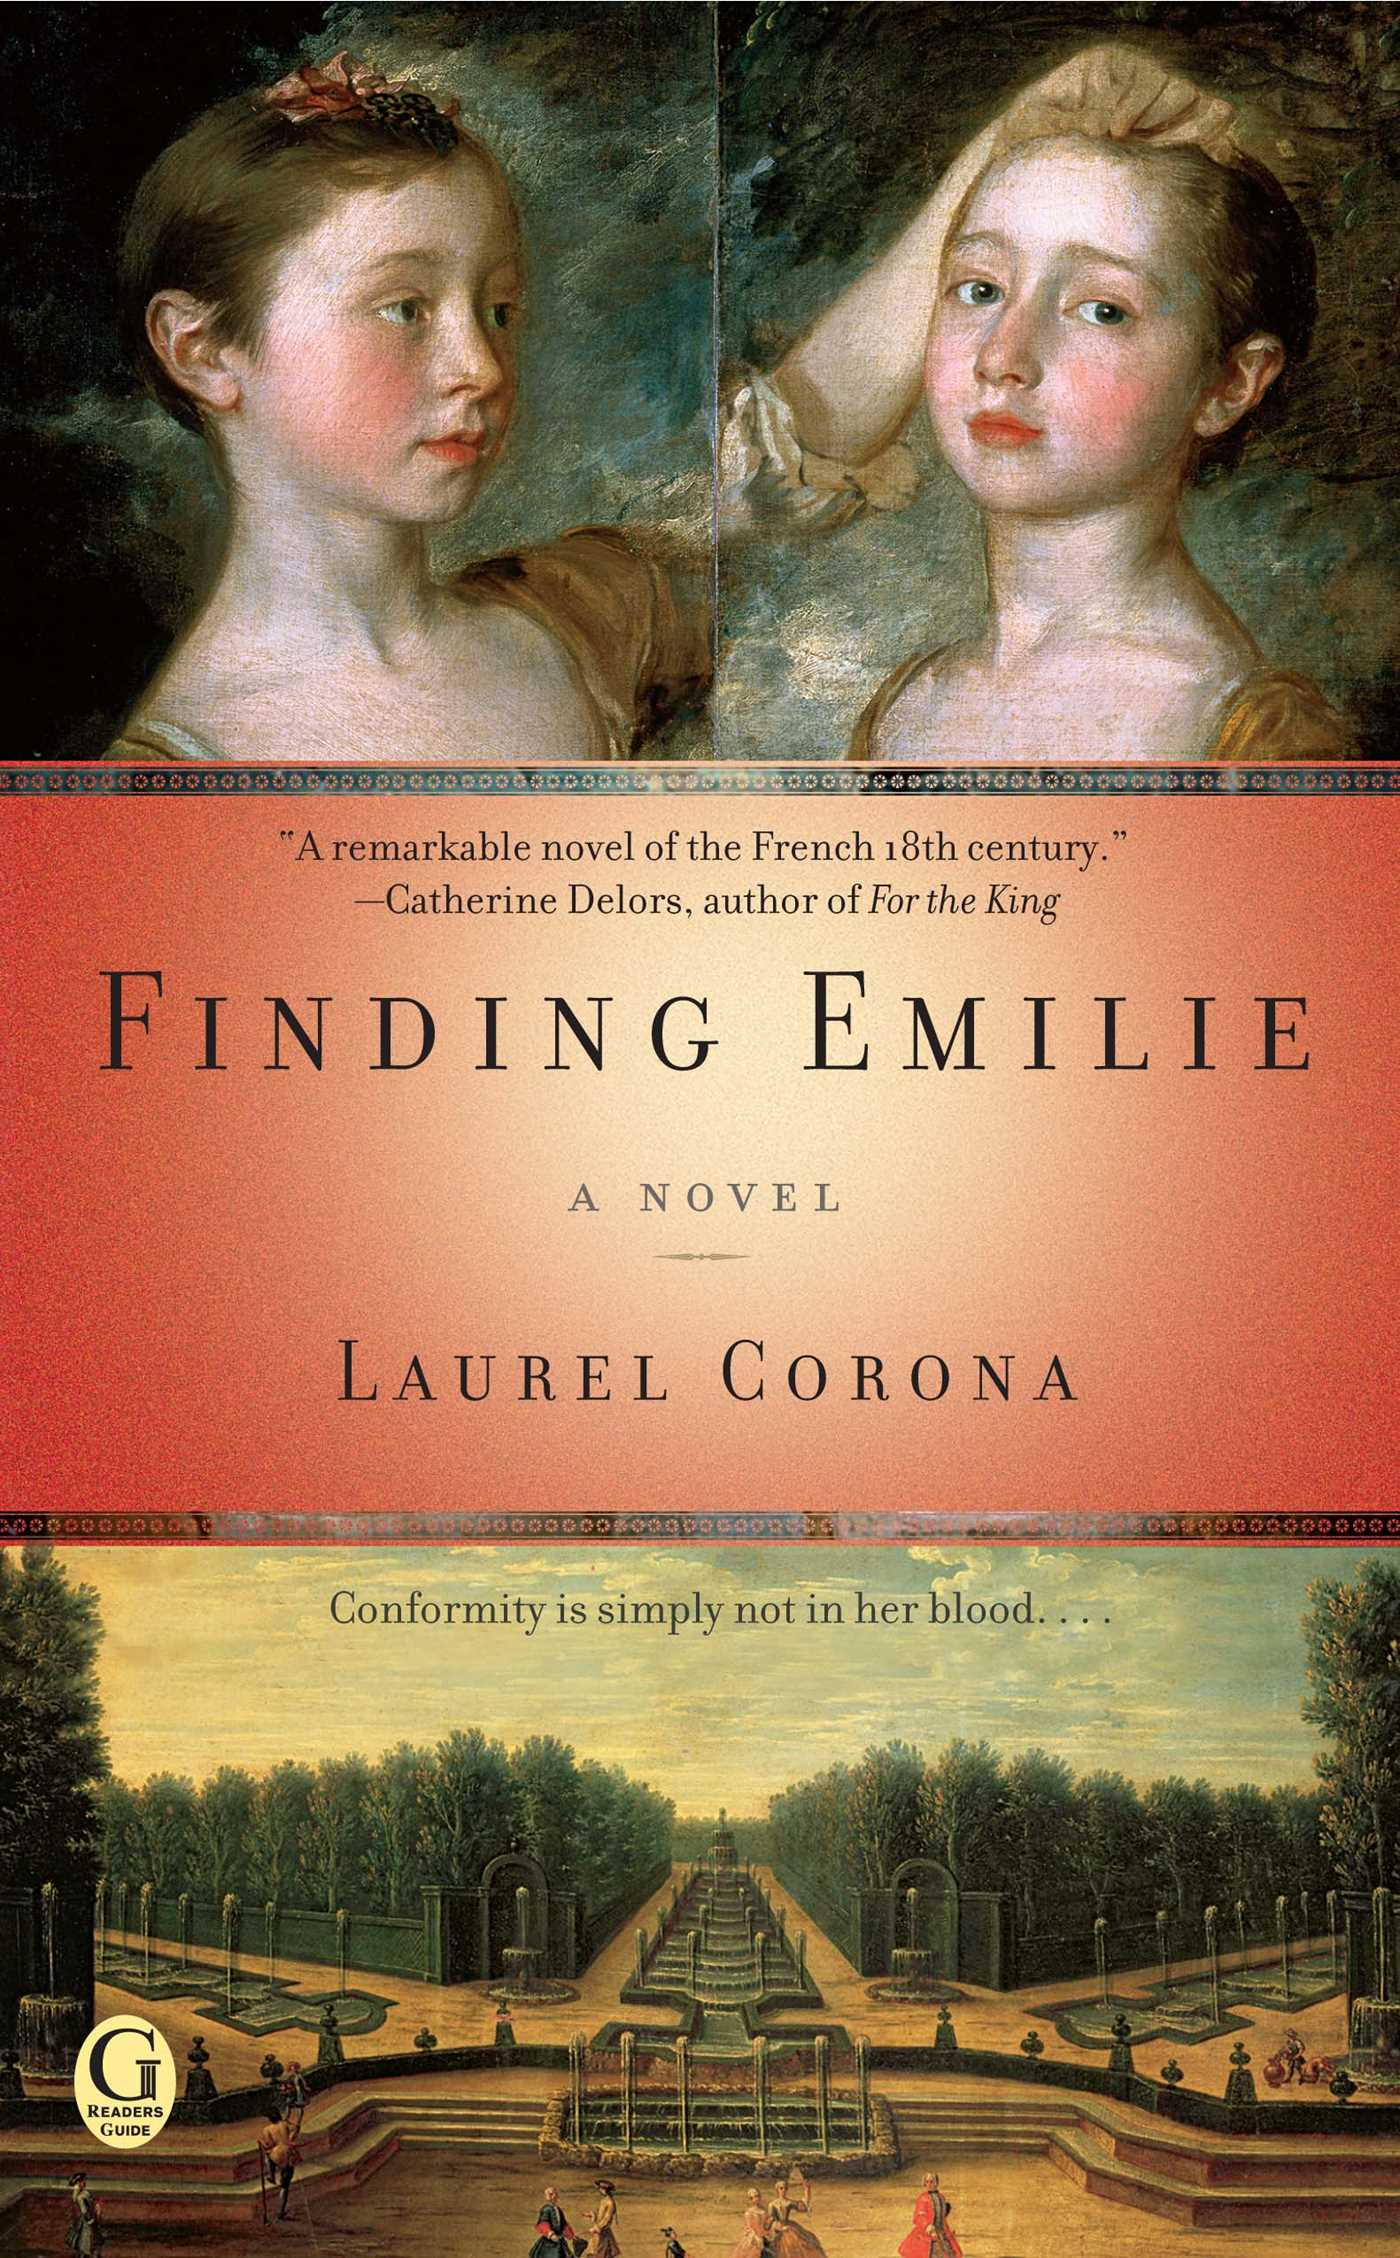 Finding emilie 9781439197660 hr